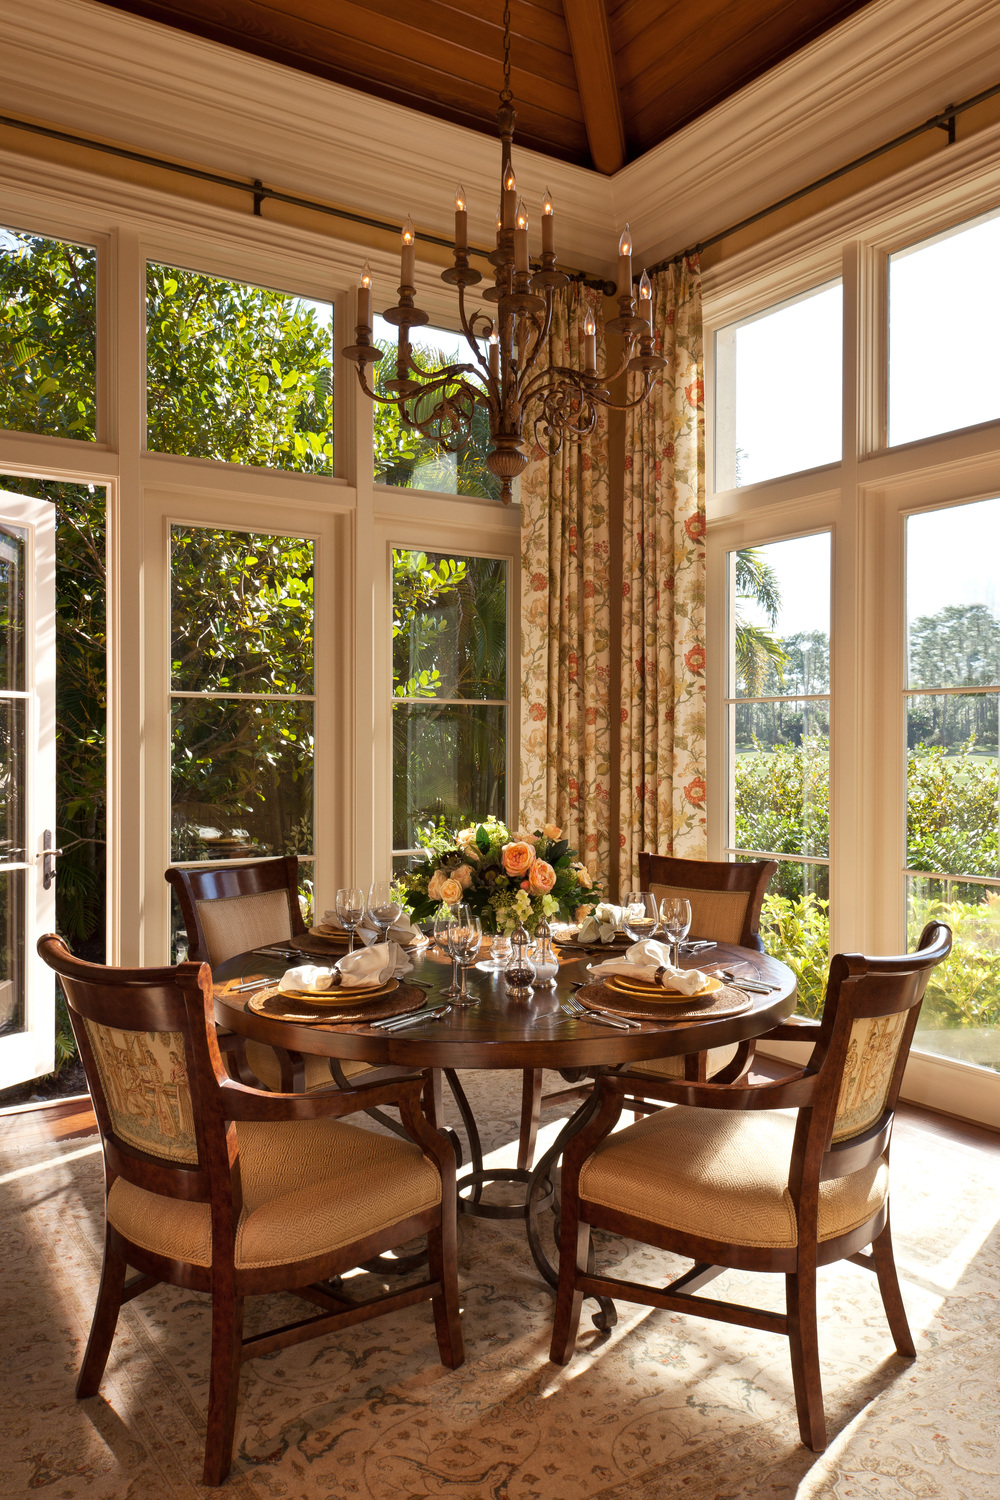 Below the carefully planned beamed cypress wood ceiling and surrounded by hurricane proof windows, this charming breakfast room is filled with Florida sunshine.